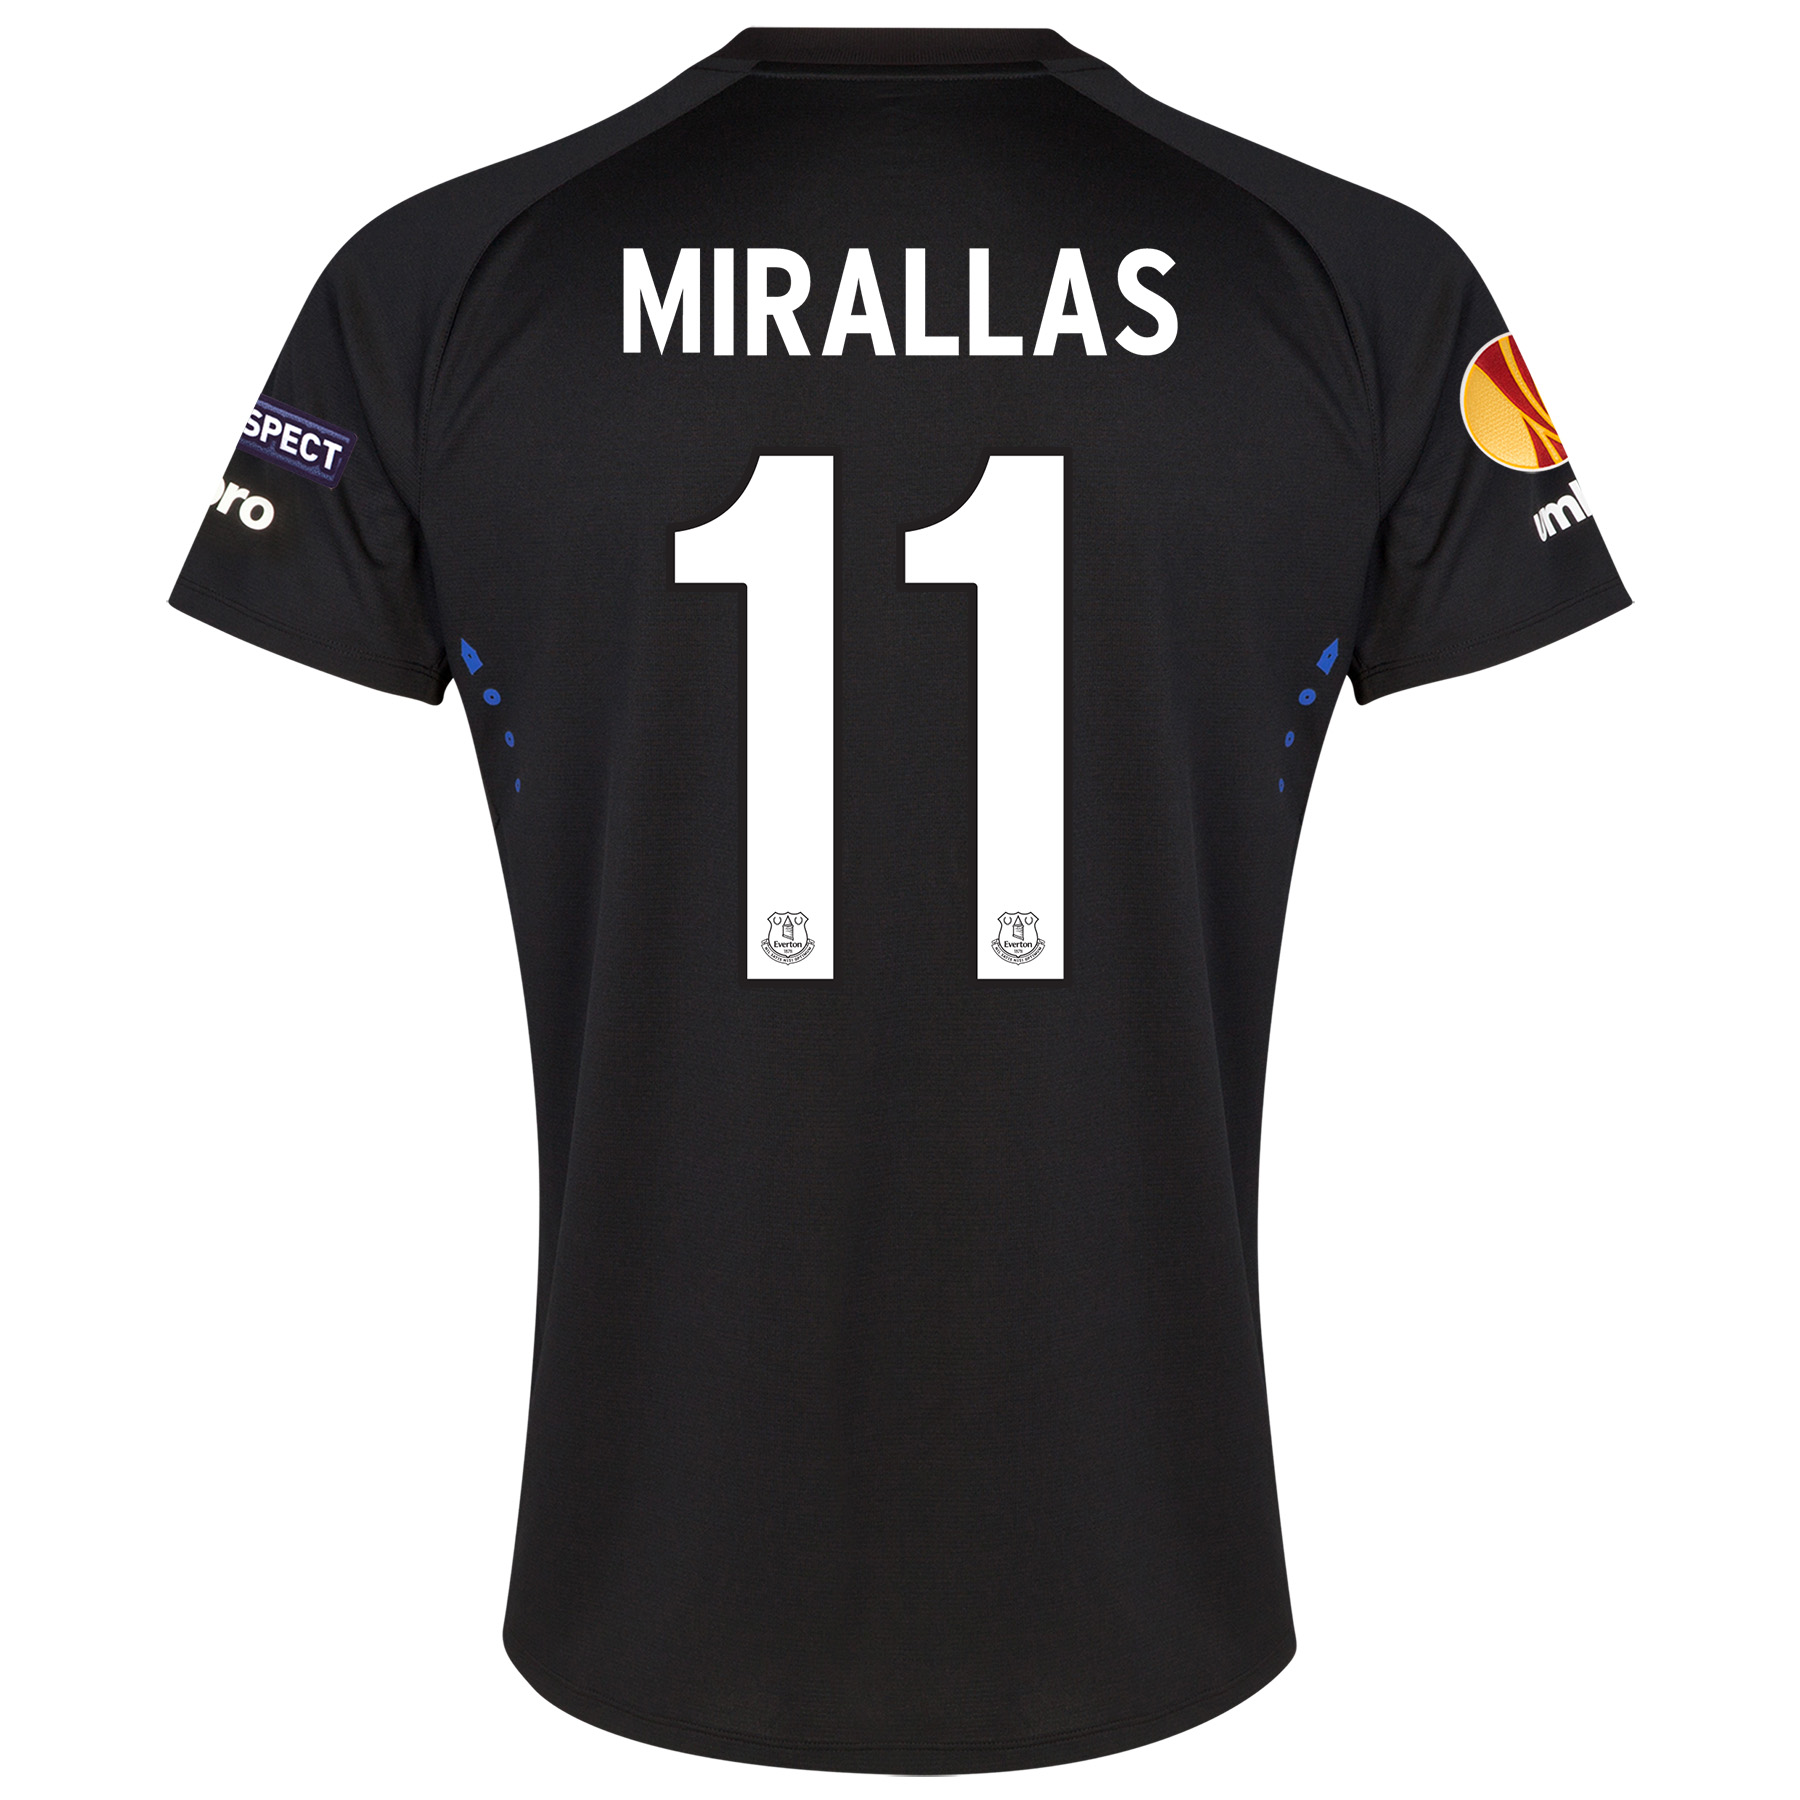 Everton UEFA Europa League Away Shirt 2014/15 with Mirallas 11 printin